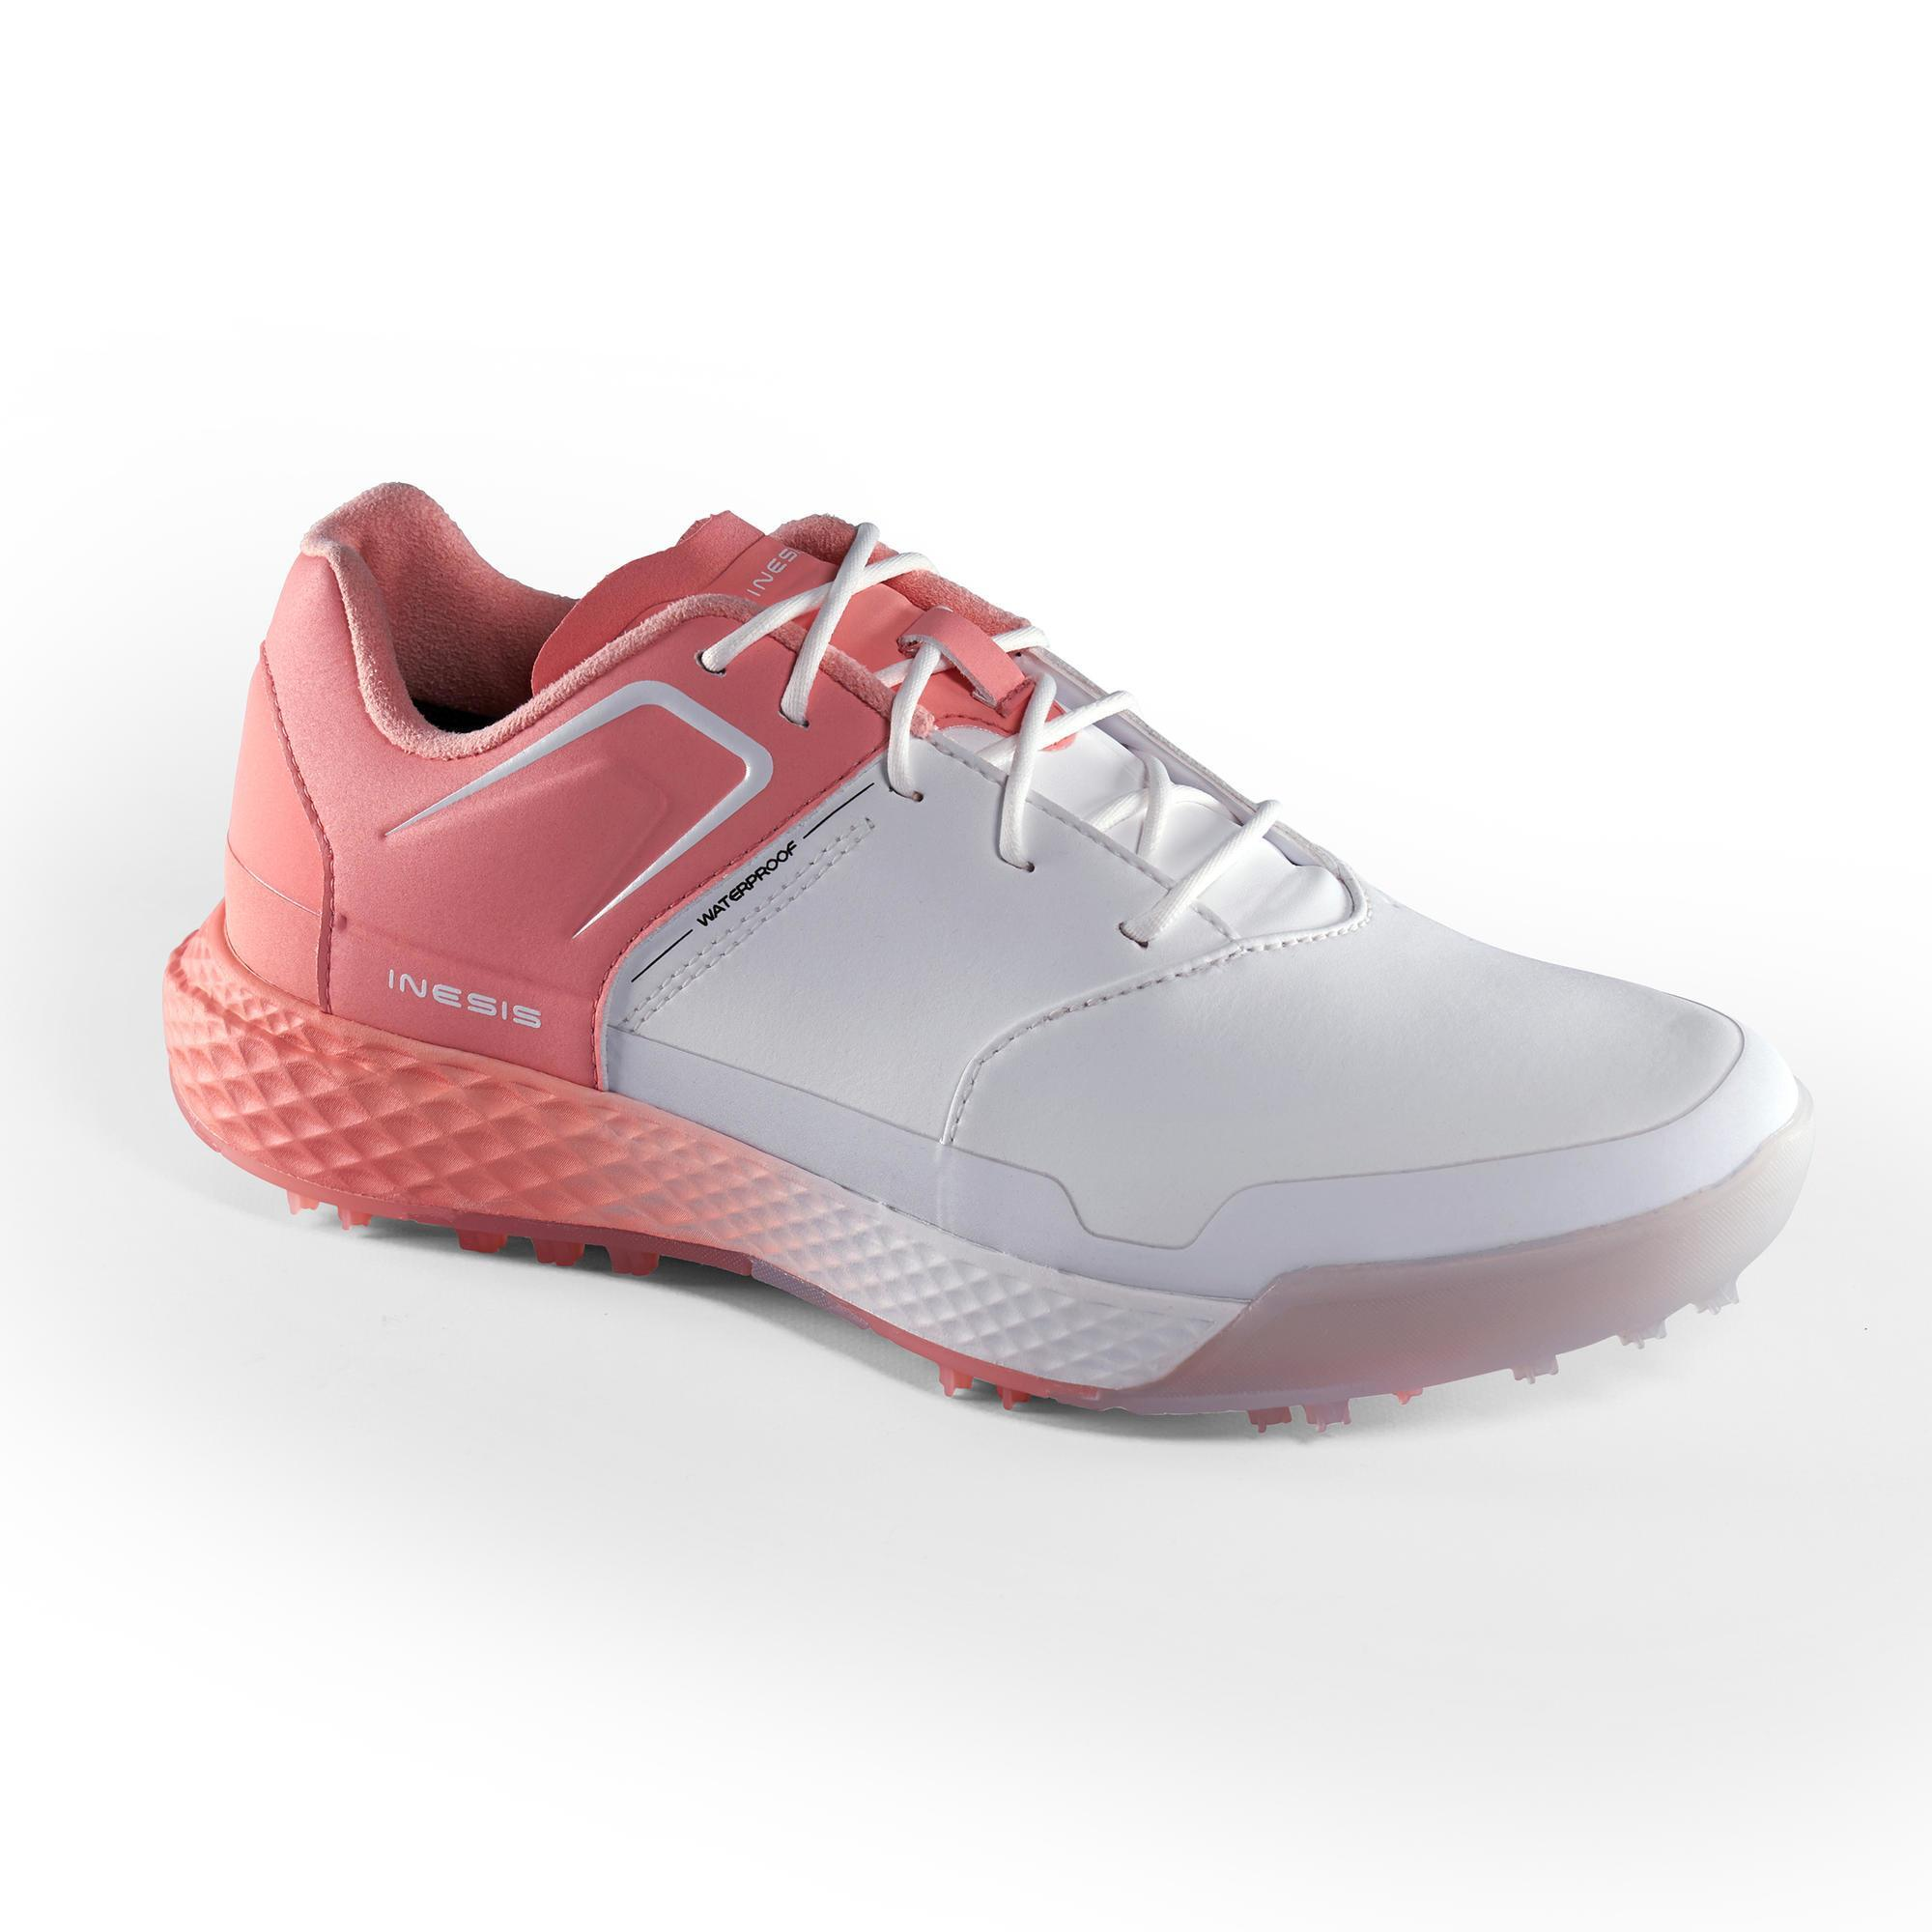 Inesis Golfschoenen dames Grip Waterproof